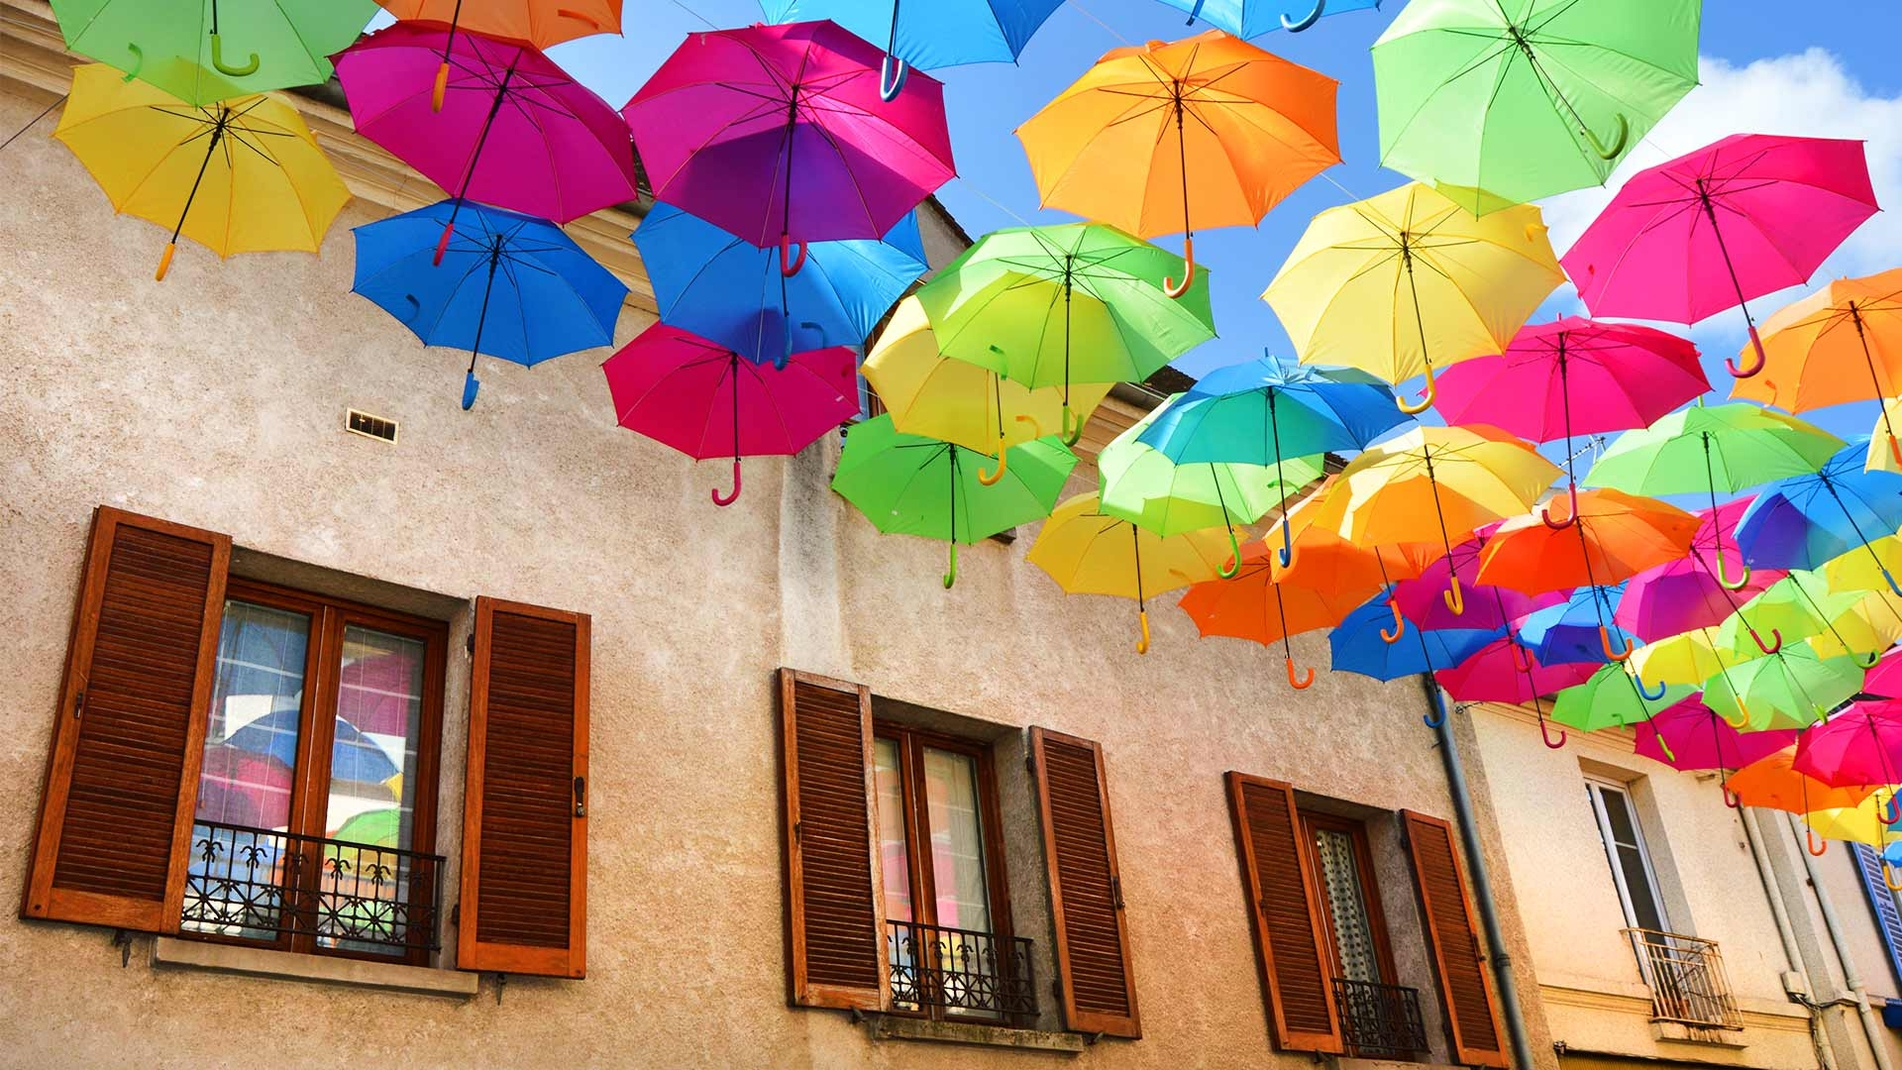 Umbrella Sky Project - Verrieres-les-Buissons'17